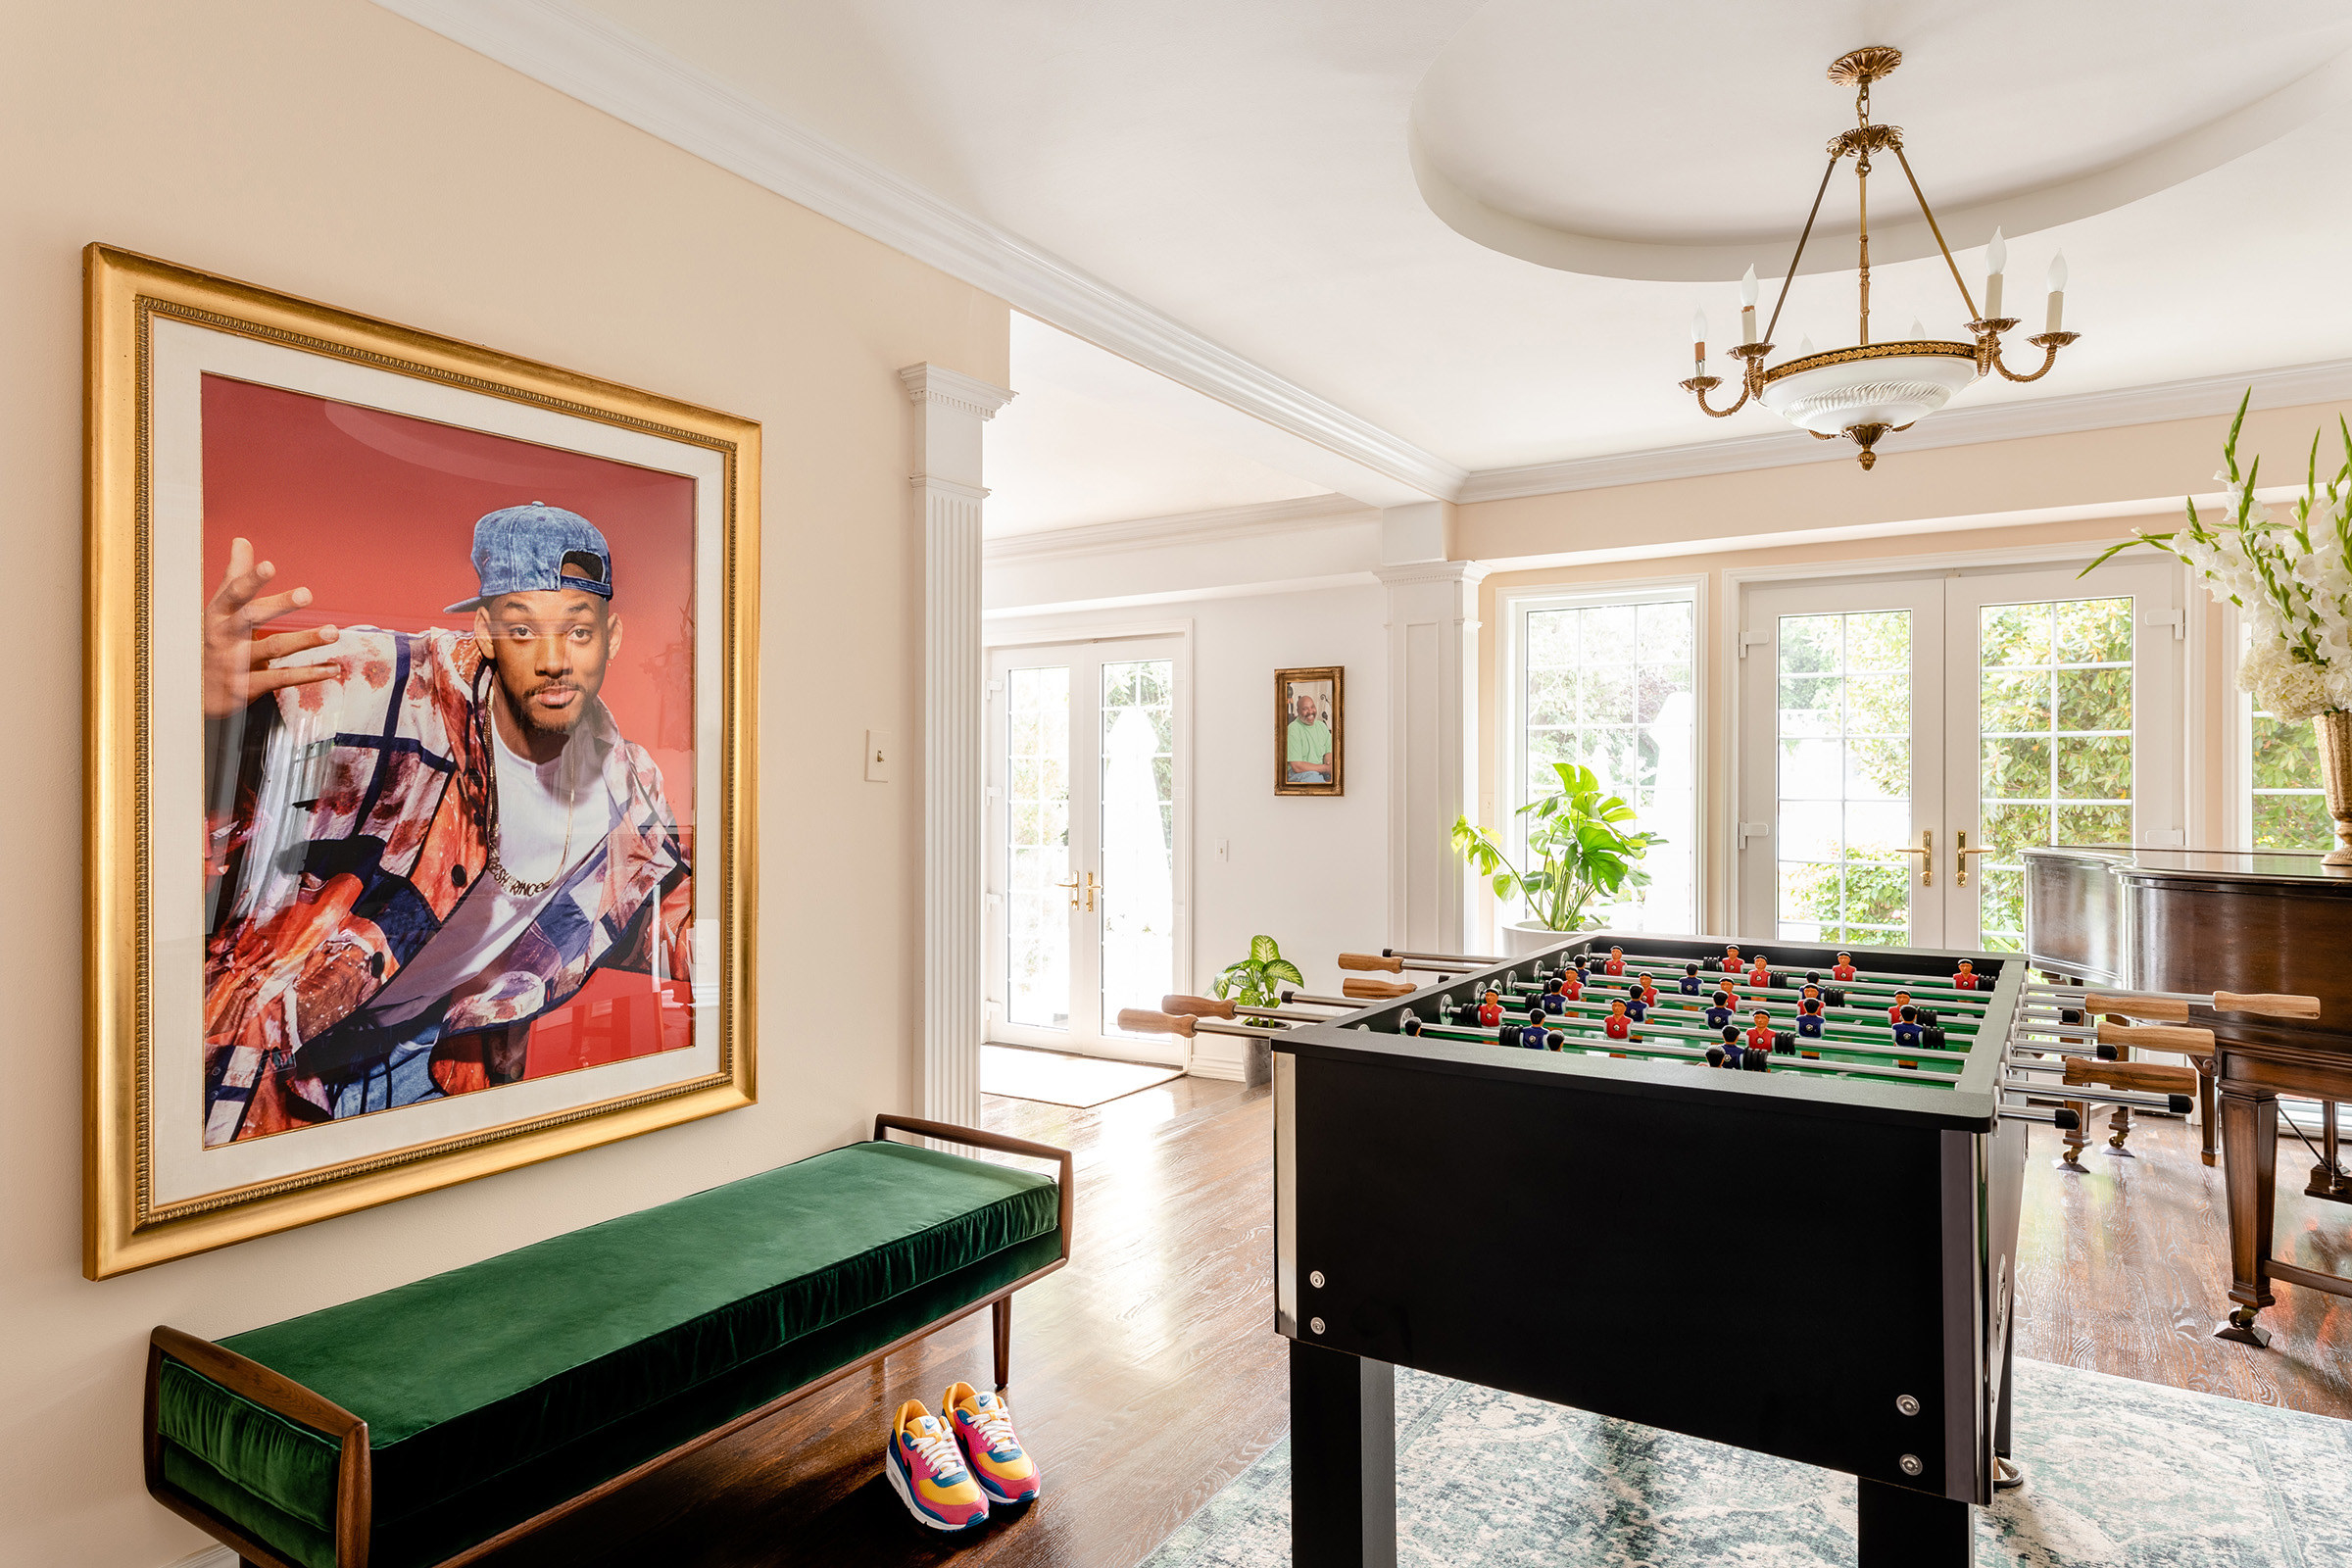 A room filled with a foosball table, piano, and a framed photo of Will Smith (à la Fresh Prince) on the wall